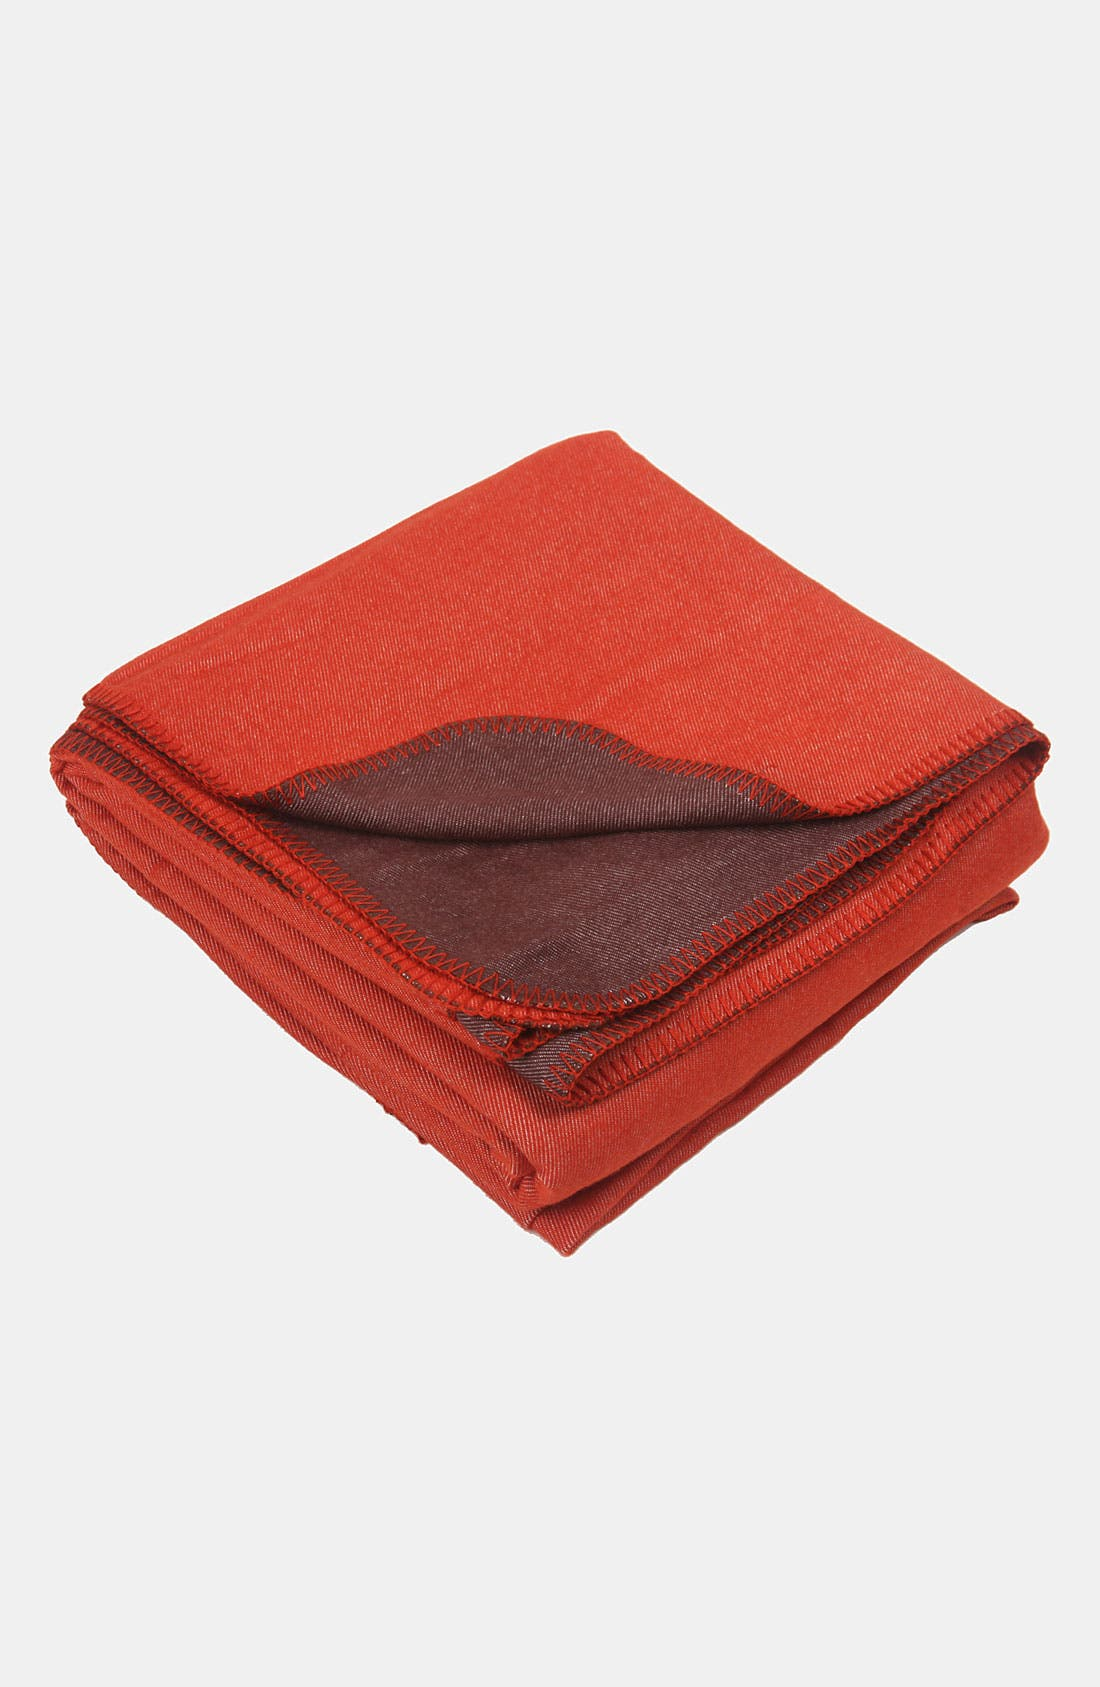 Main Image - Blissliving Home 'Alana - Persimmon/Café' Blanket (Online Only)